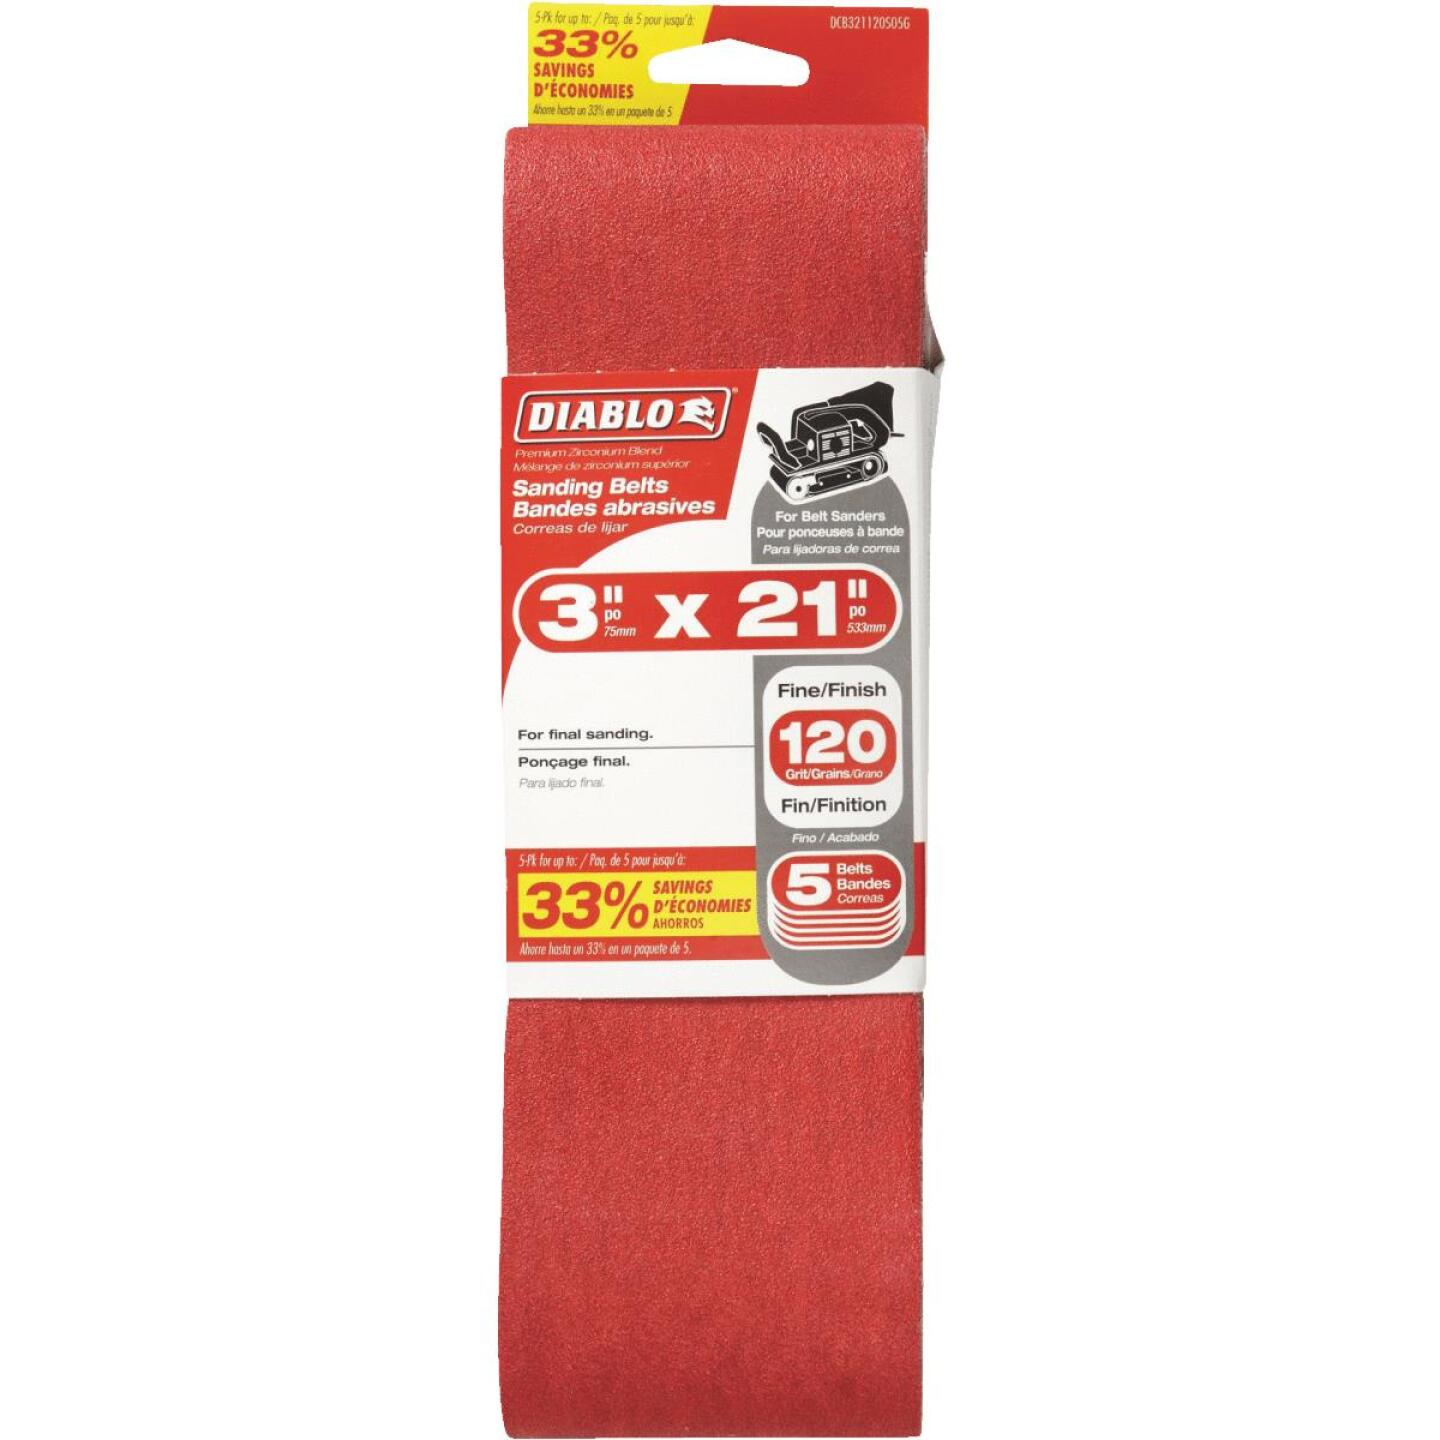 Diablo 3 In. x 21 In. 120 Grit General Purpose Sanding Belt (5-Pack) Image 1